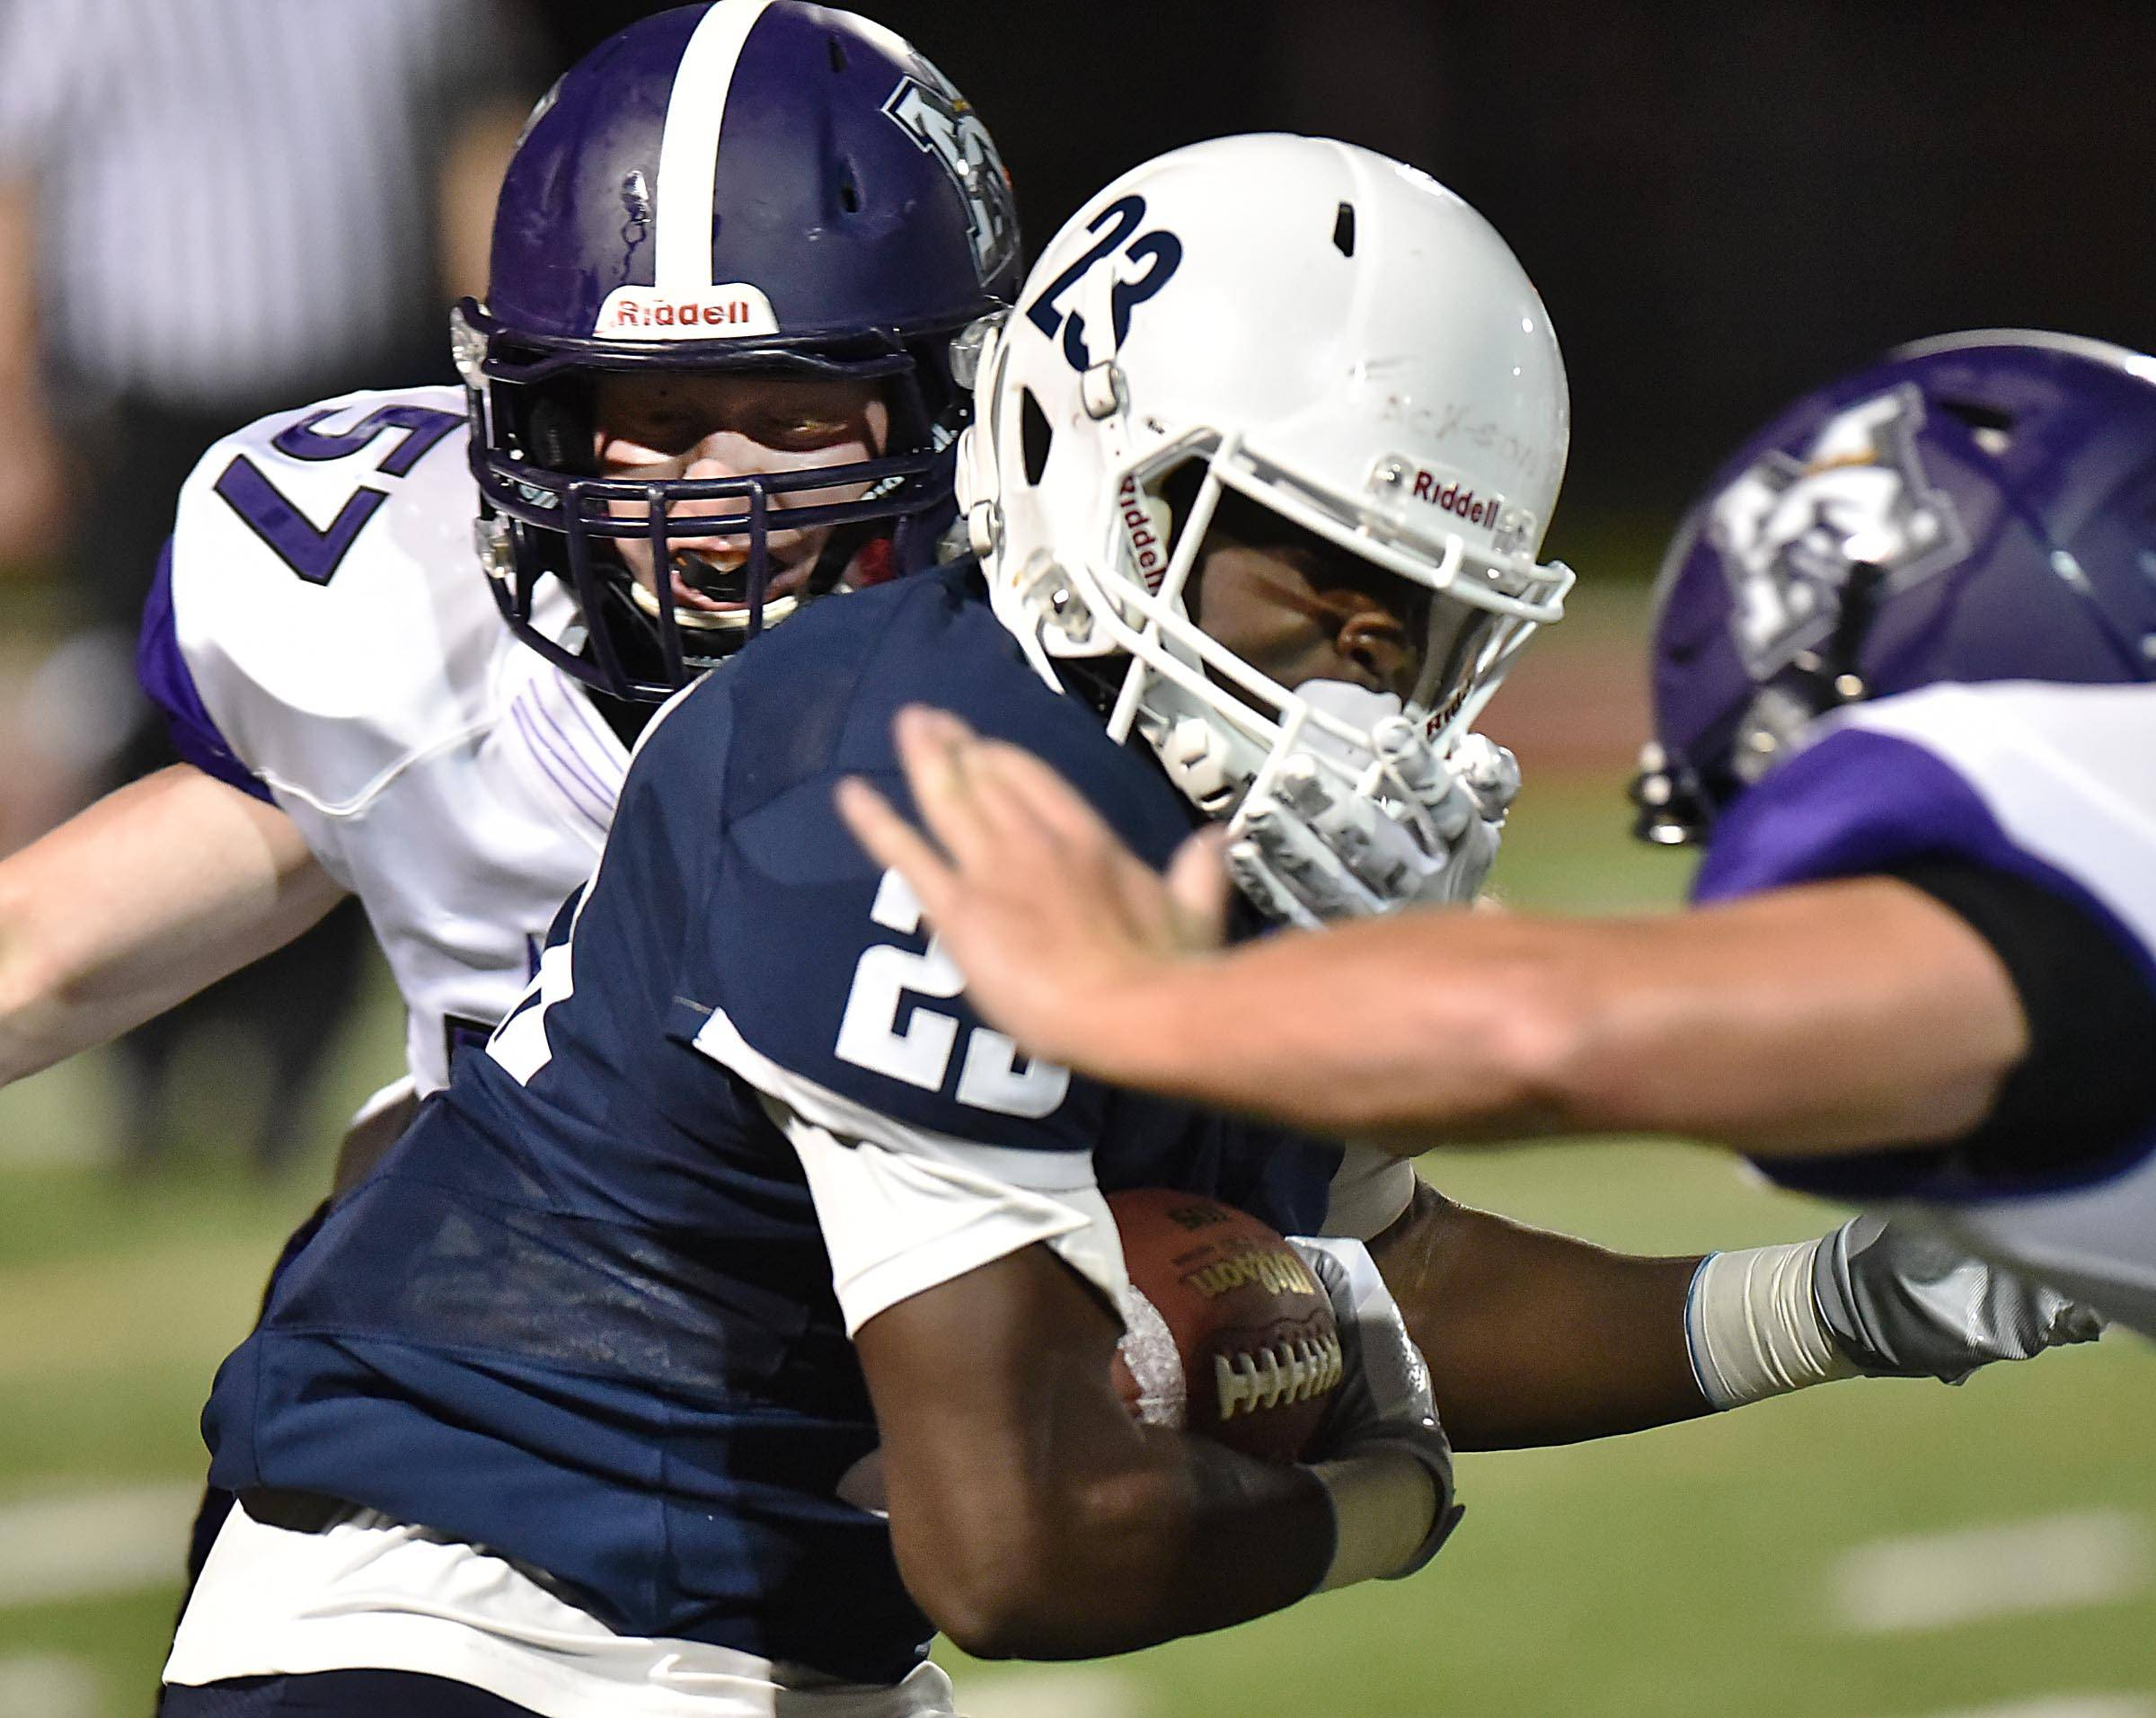 Rolling Meadows' Brian Jacks gets his hand on the face mask of St. Viator's Darreonta Jackson on Friday in Arlington Heights.